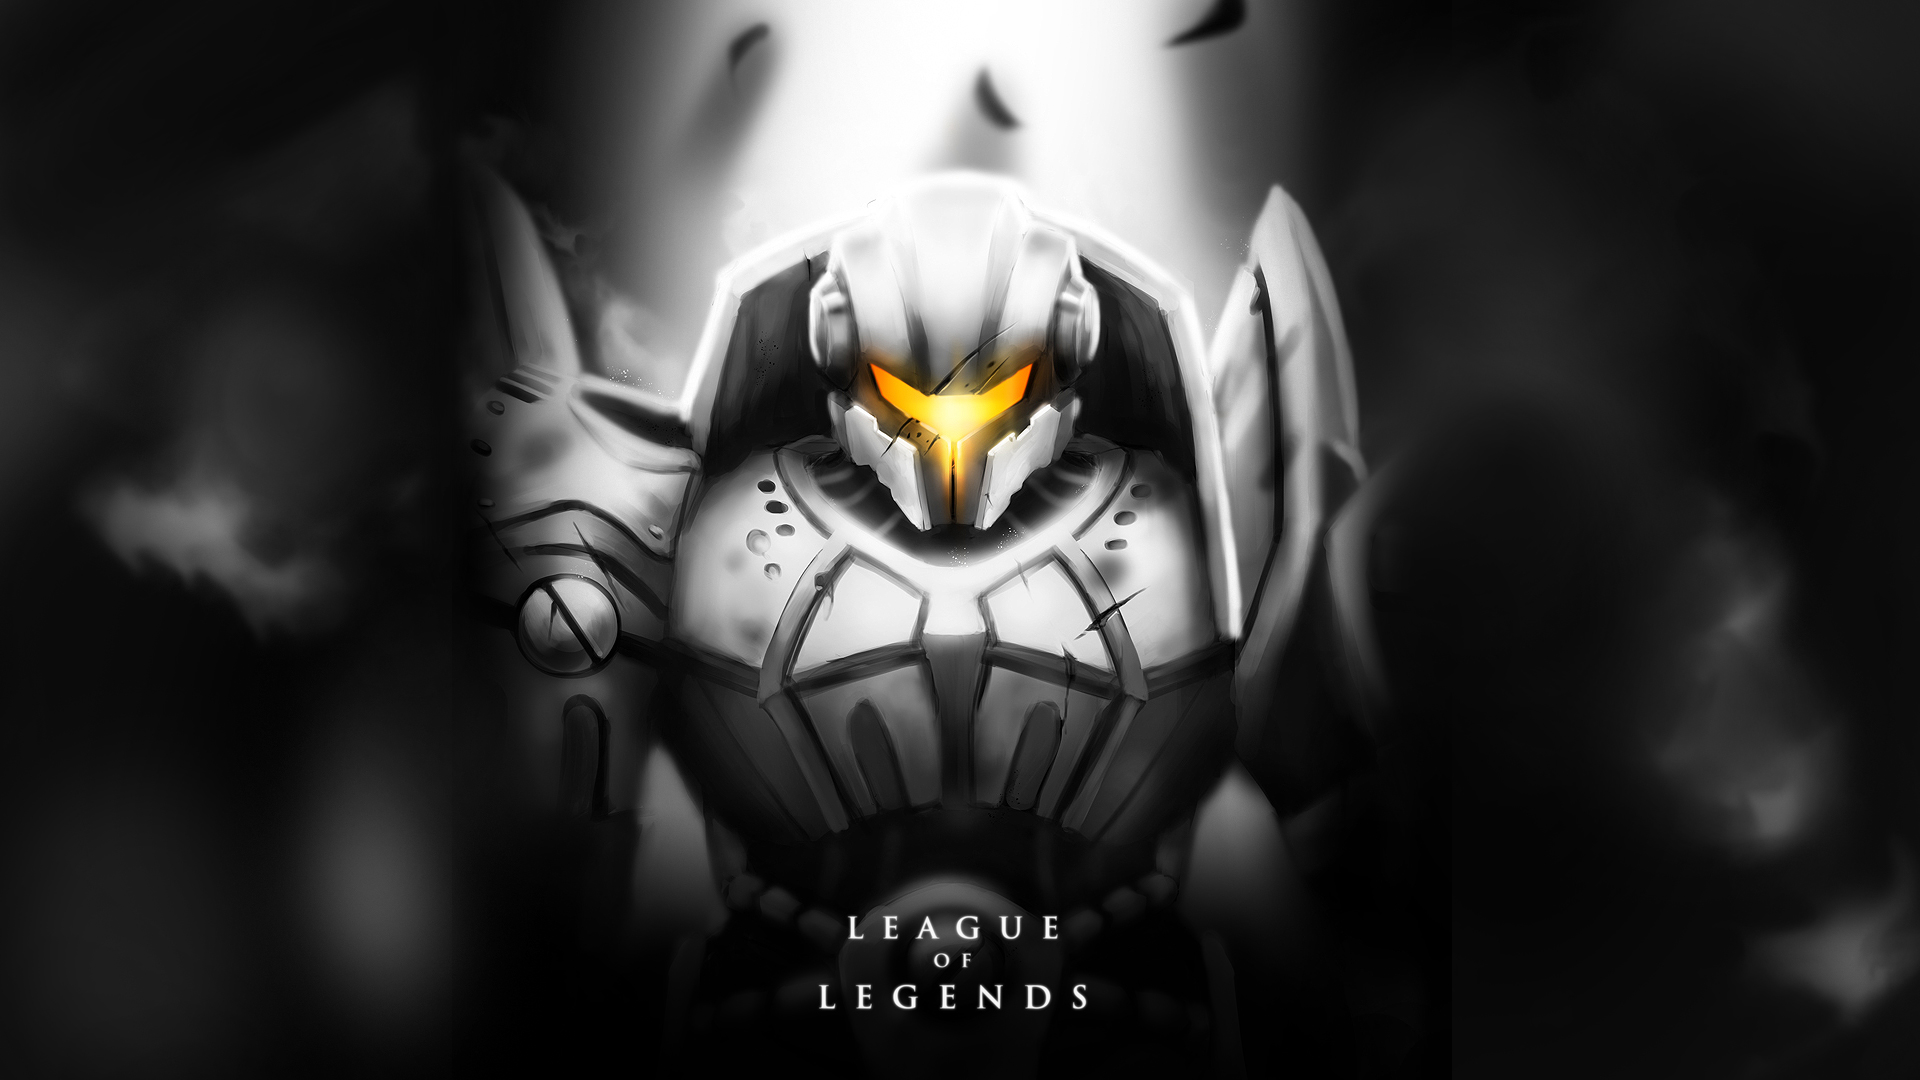 League of Legends wallpaper 98